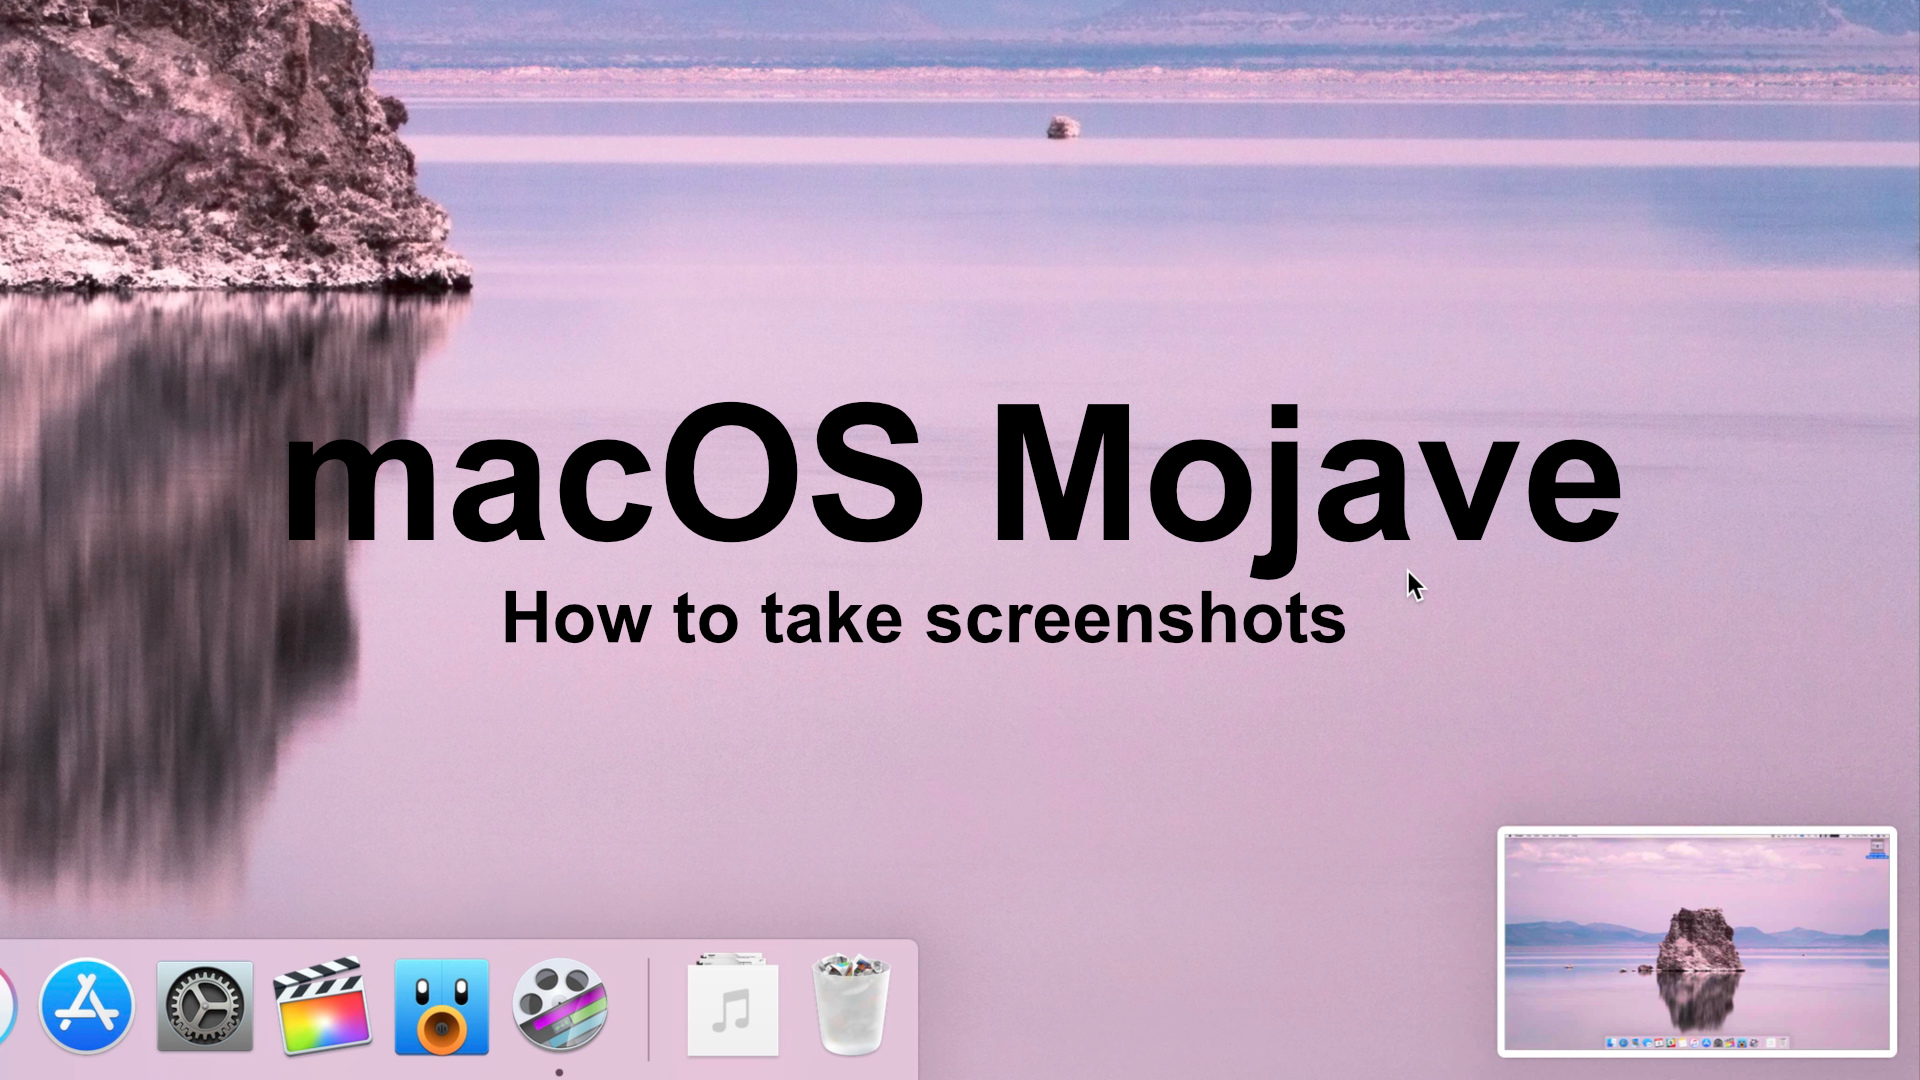 how to master macos mojave screenshots video